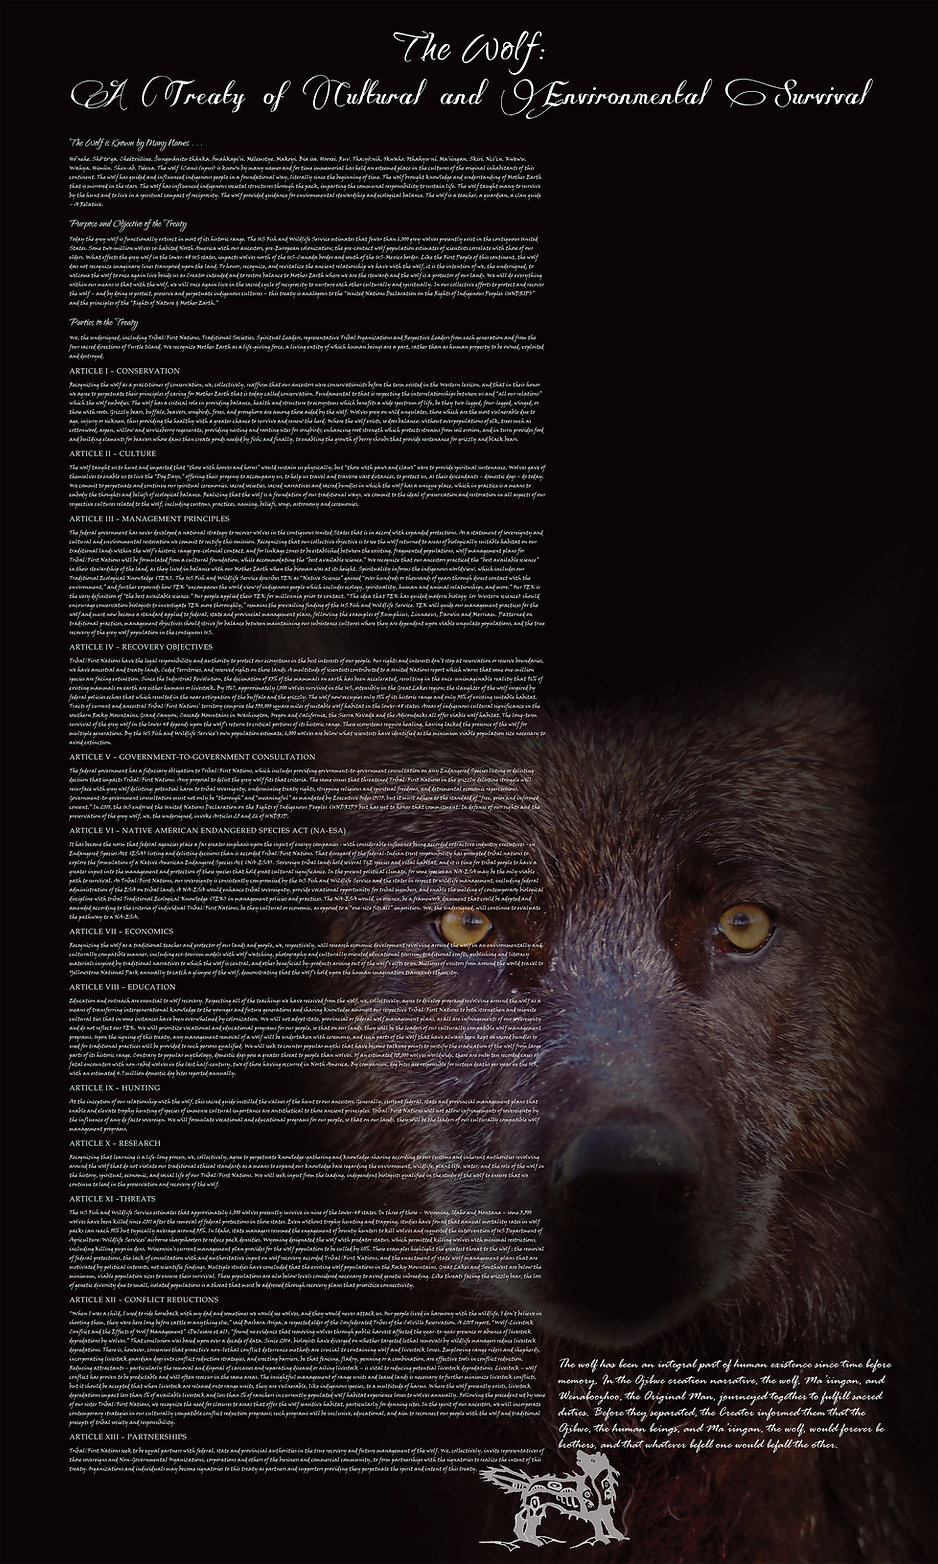 The Wolf - A Treaty of Cultural and Envi